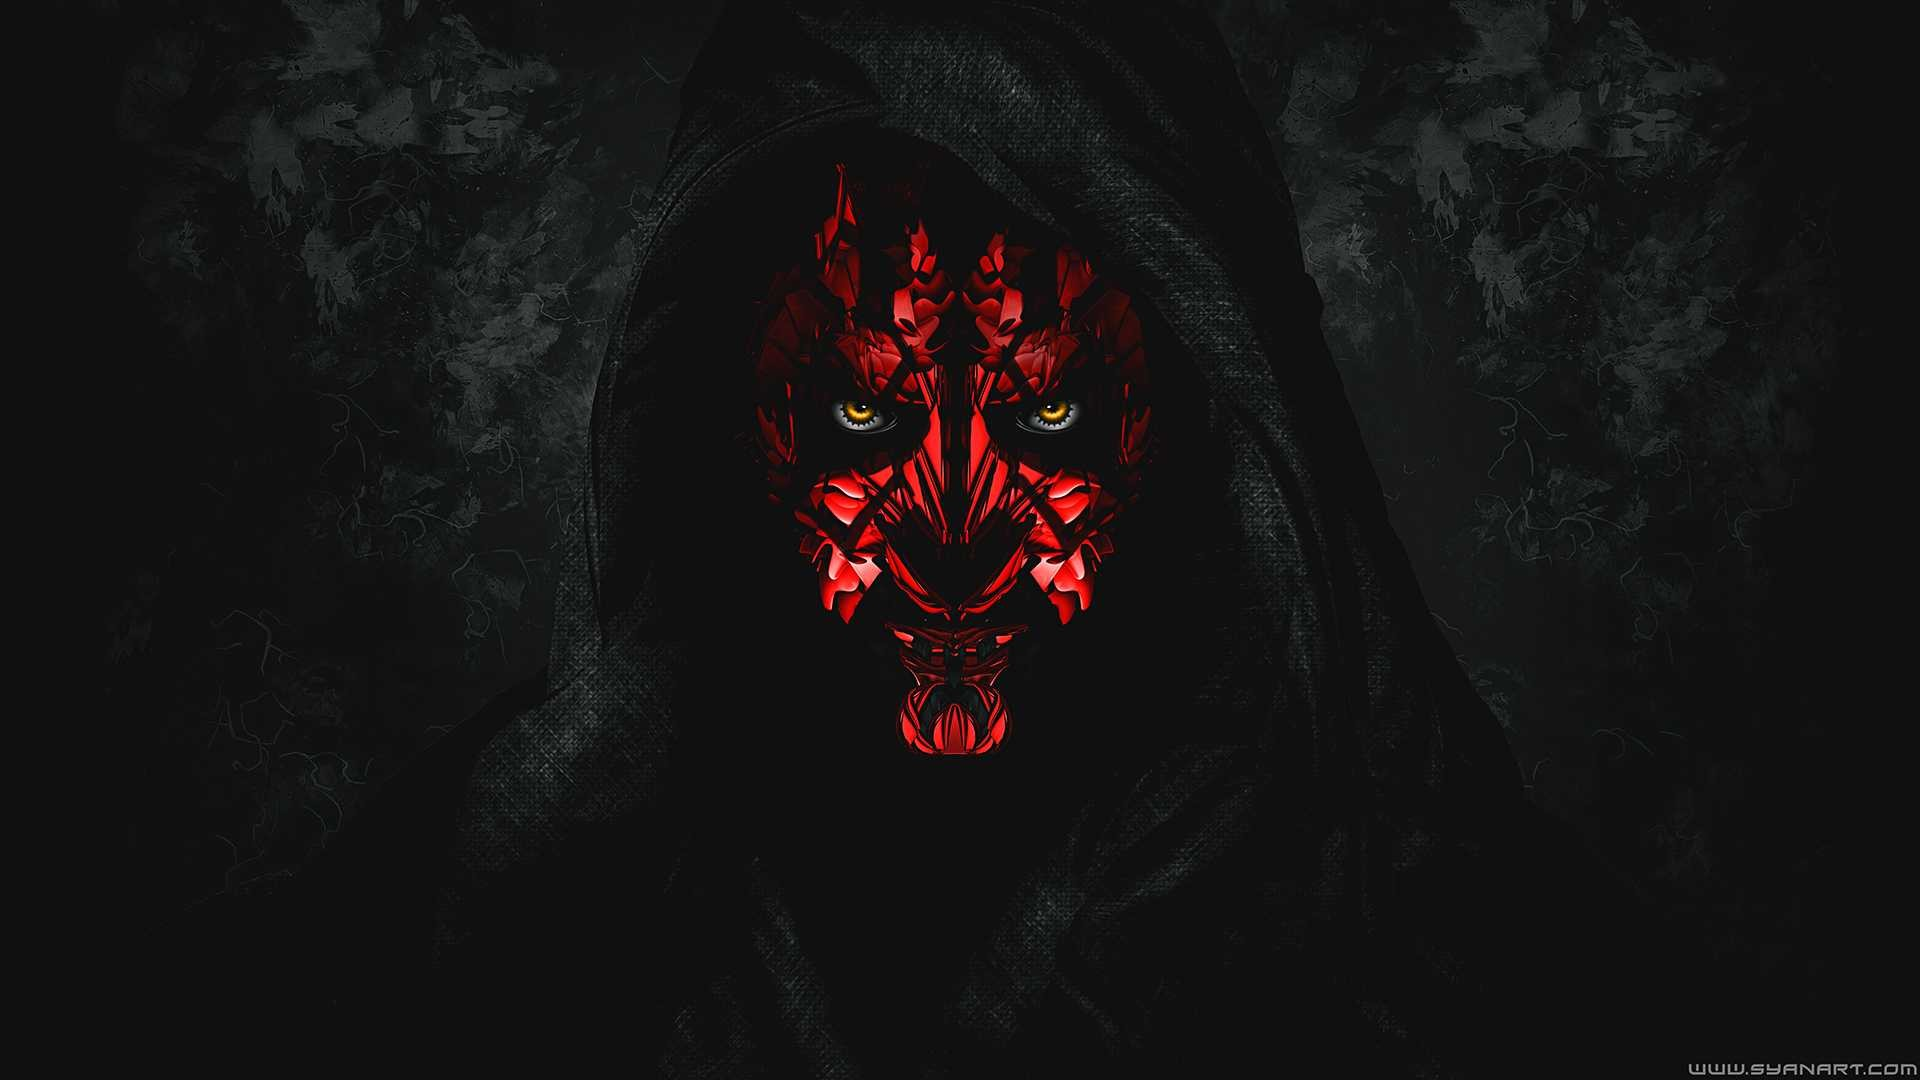 Sith Hd Wallpapers Hd Wallpaper Collections 4kwallpaper Wiki